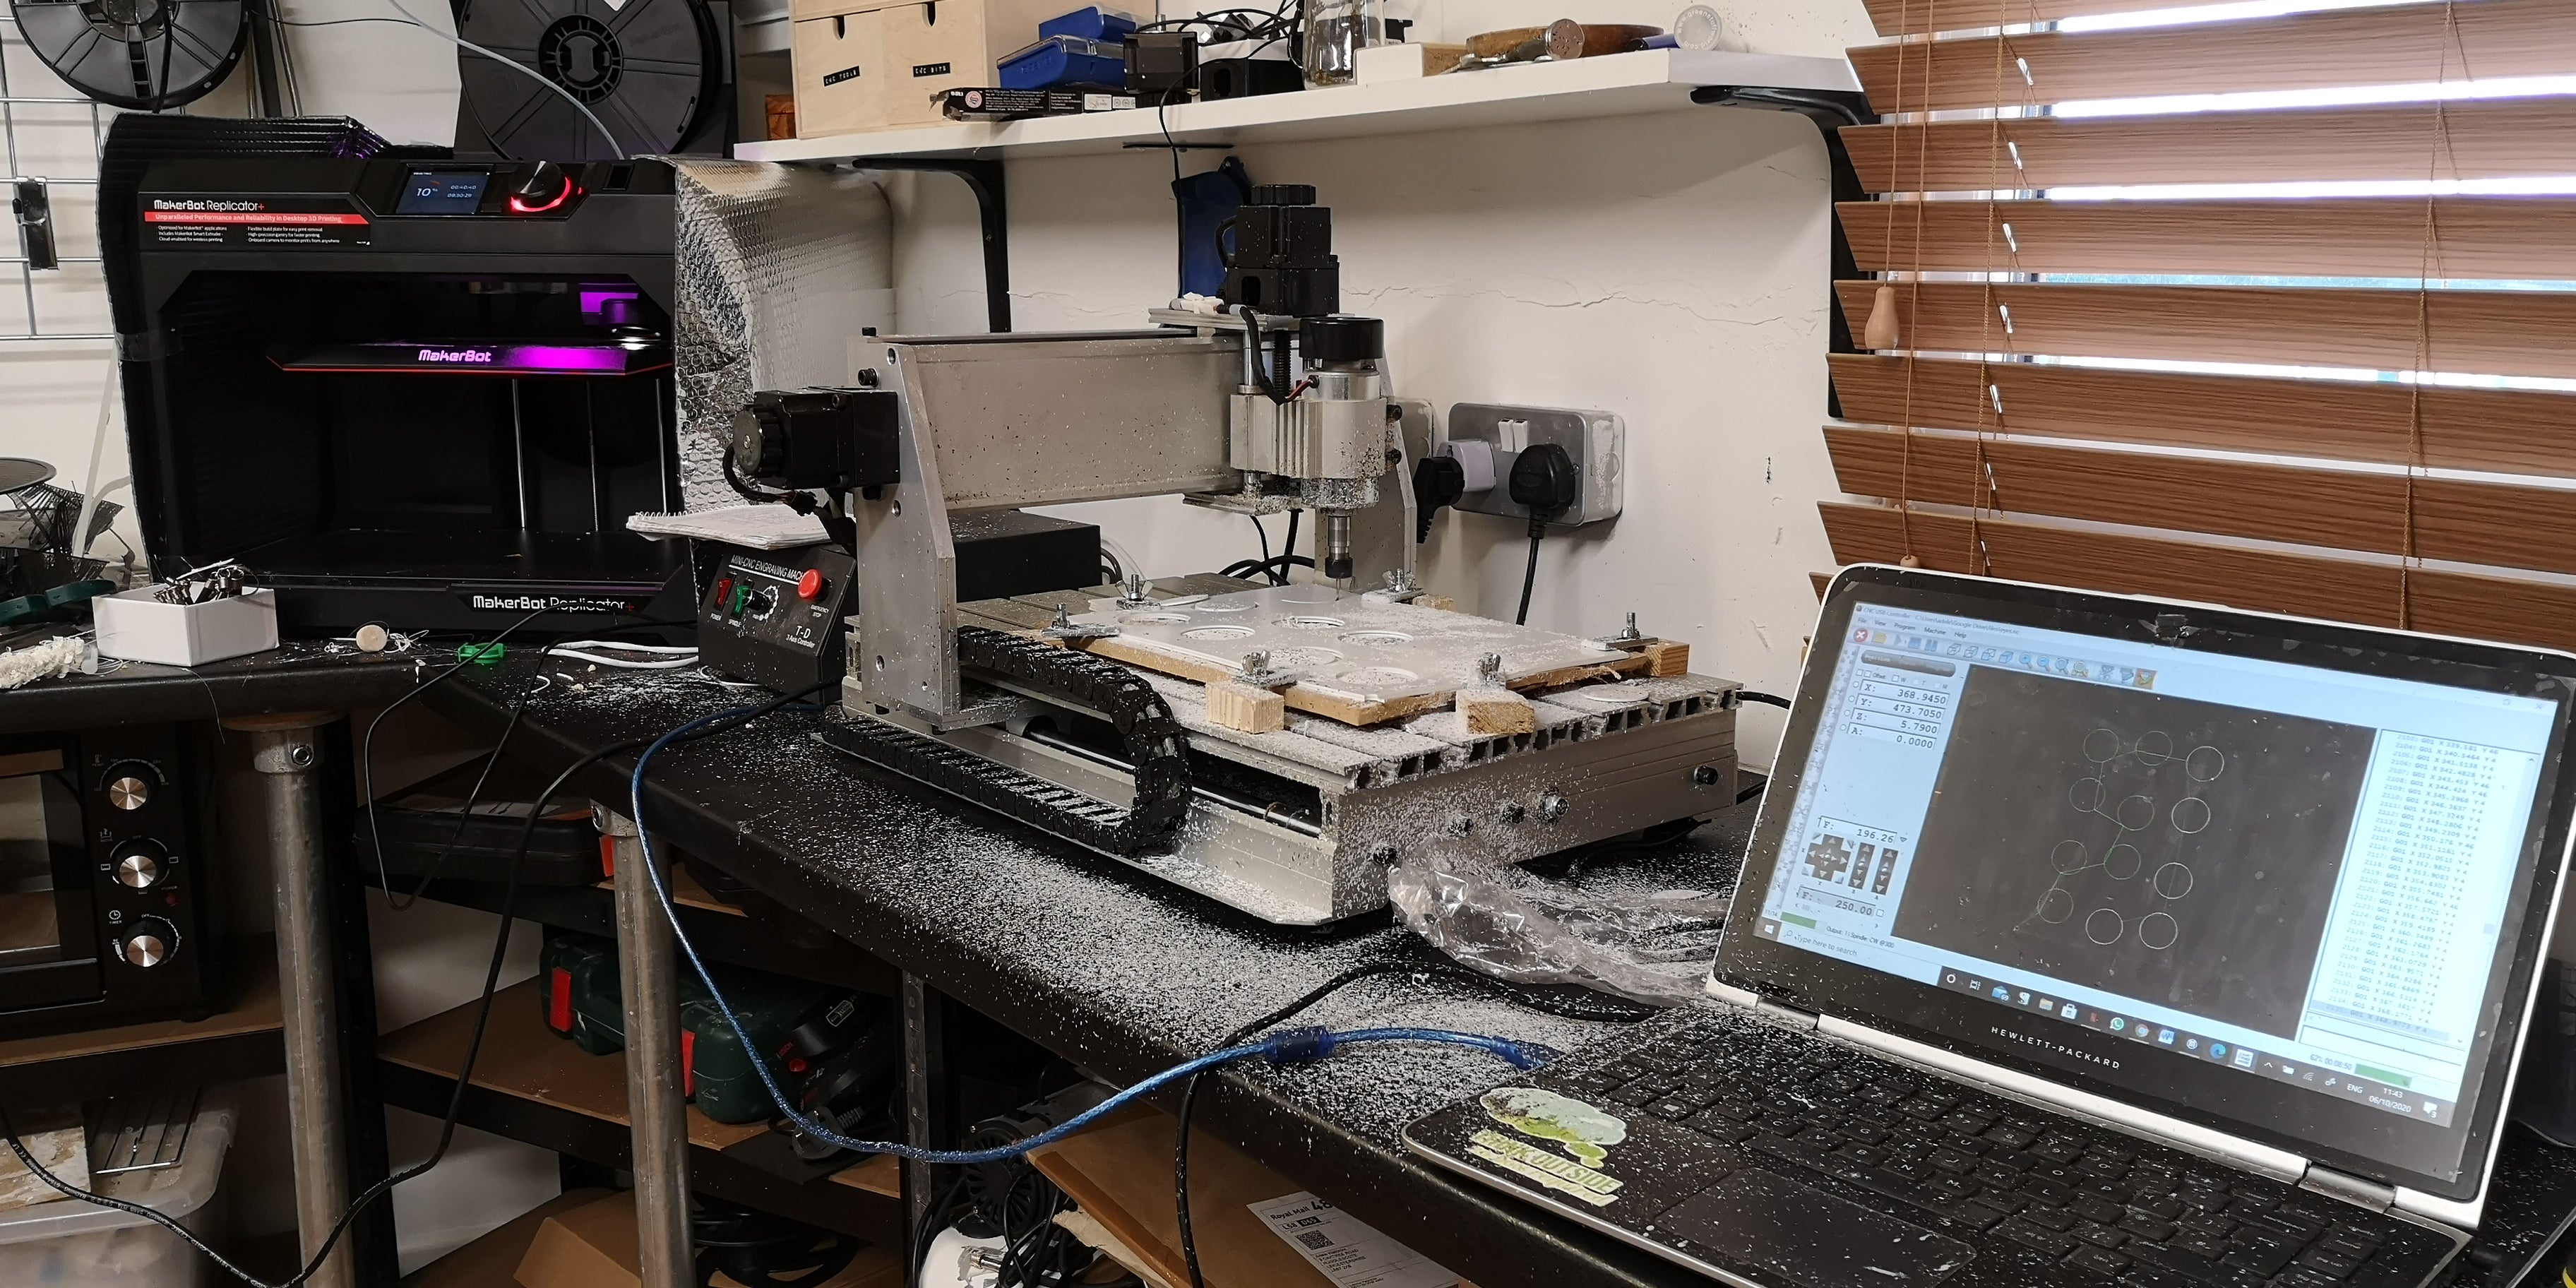 photo of my machine set up, a 3D printer and a CNC milling machine sit on a counter next to a laptop. the counter top is dirty with bits from the milling machine that has just been used